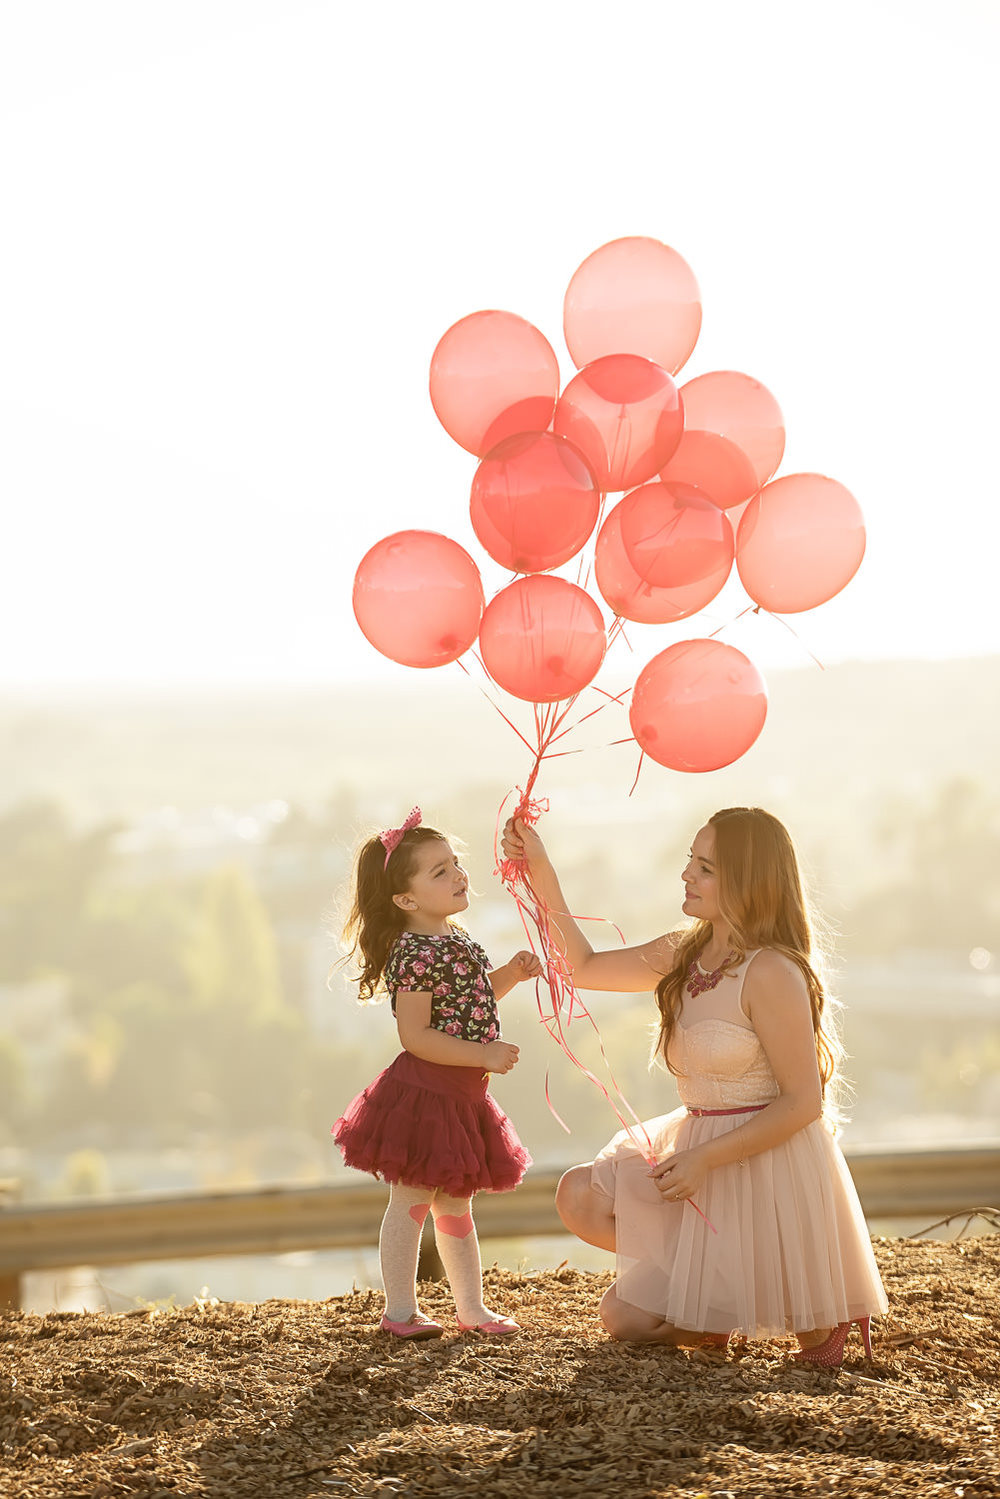 f27-Photography-Ventura-Grant-Park-Serra-Cross-Family-Photo-Session-Mom-and-Daughter-with-Balloons